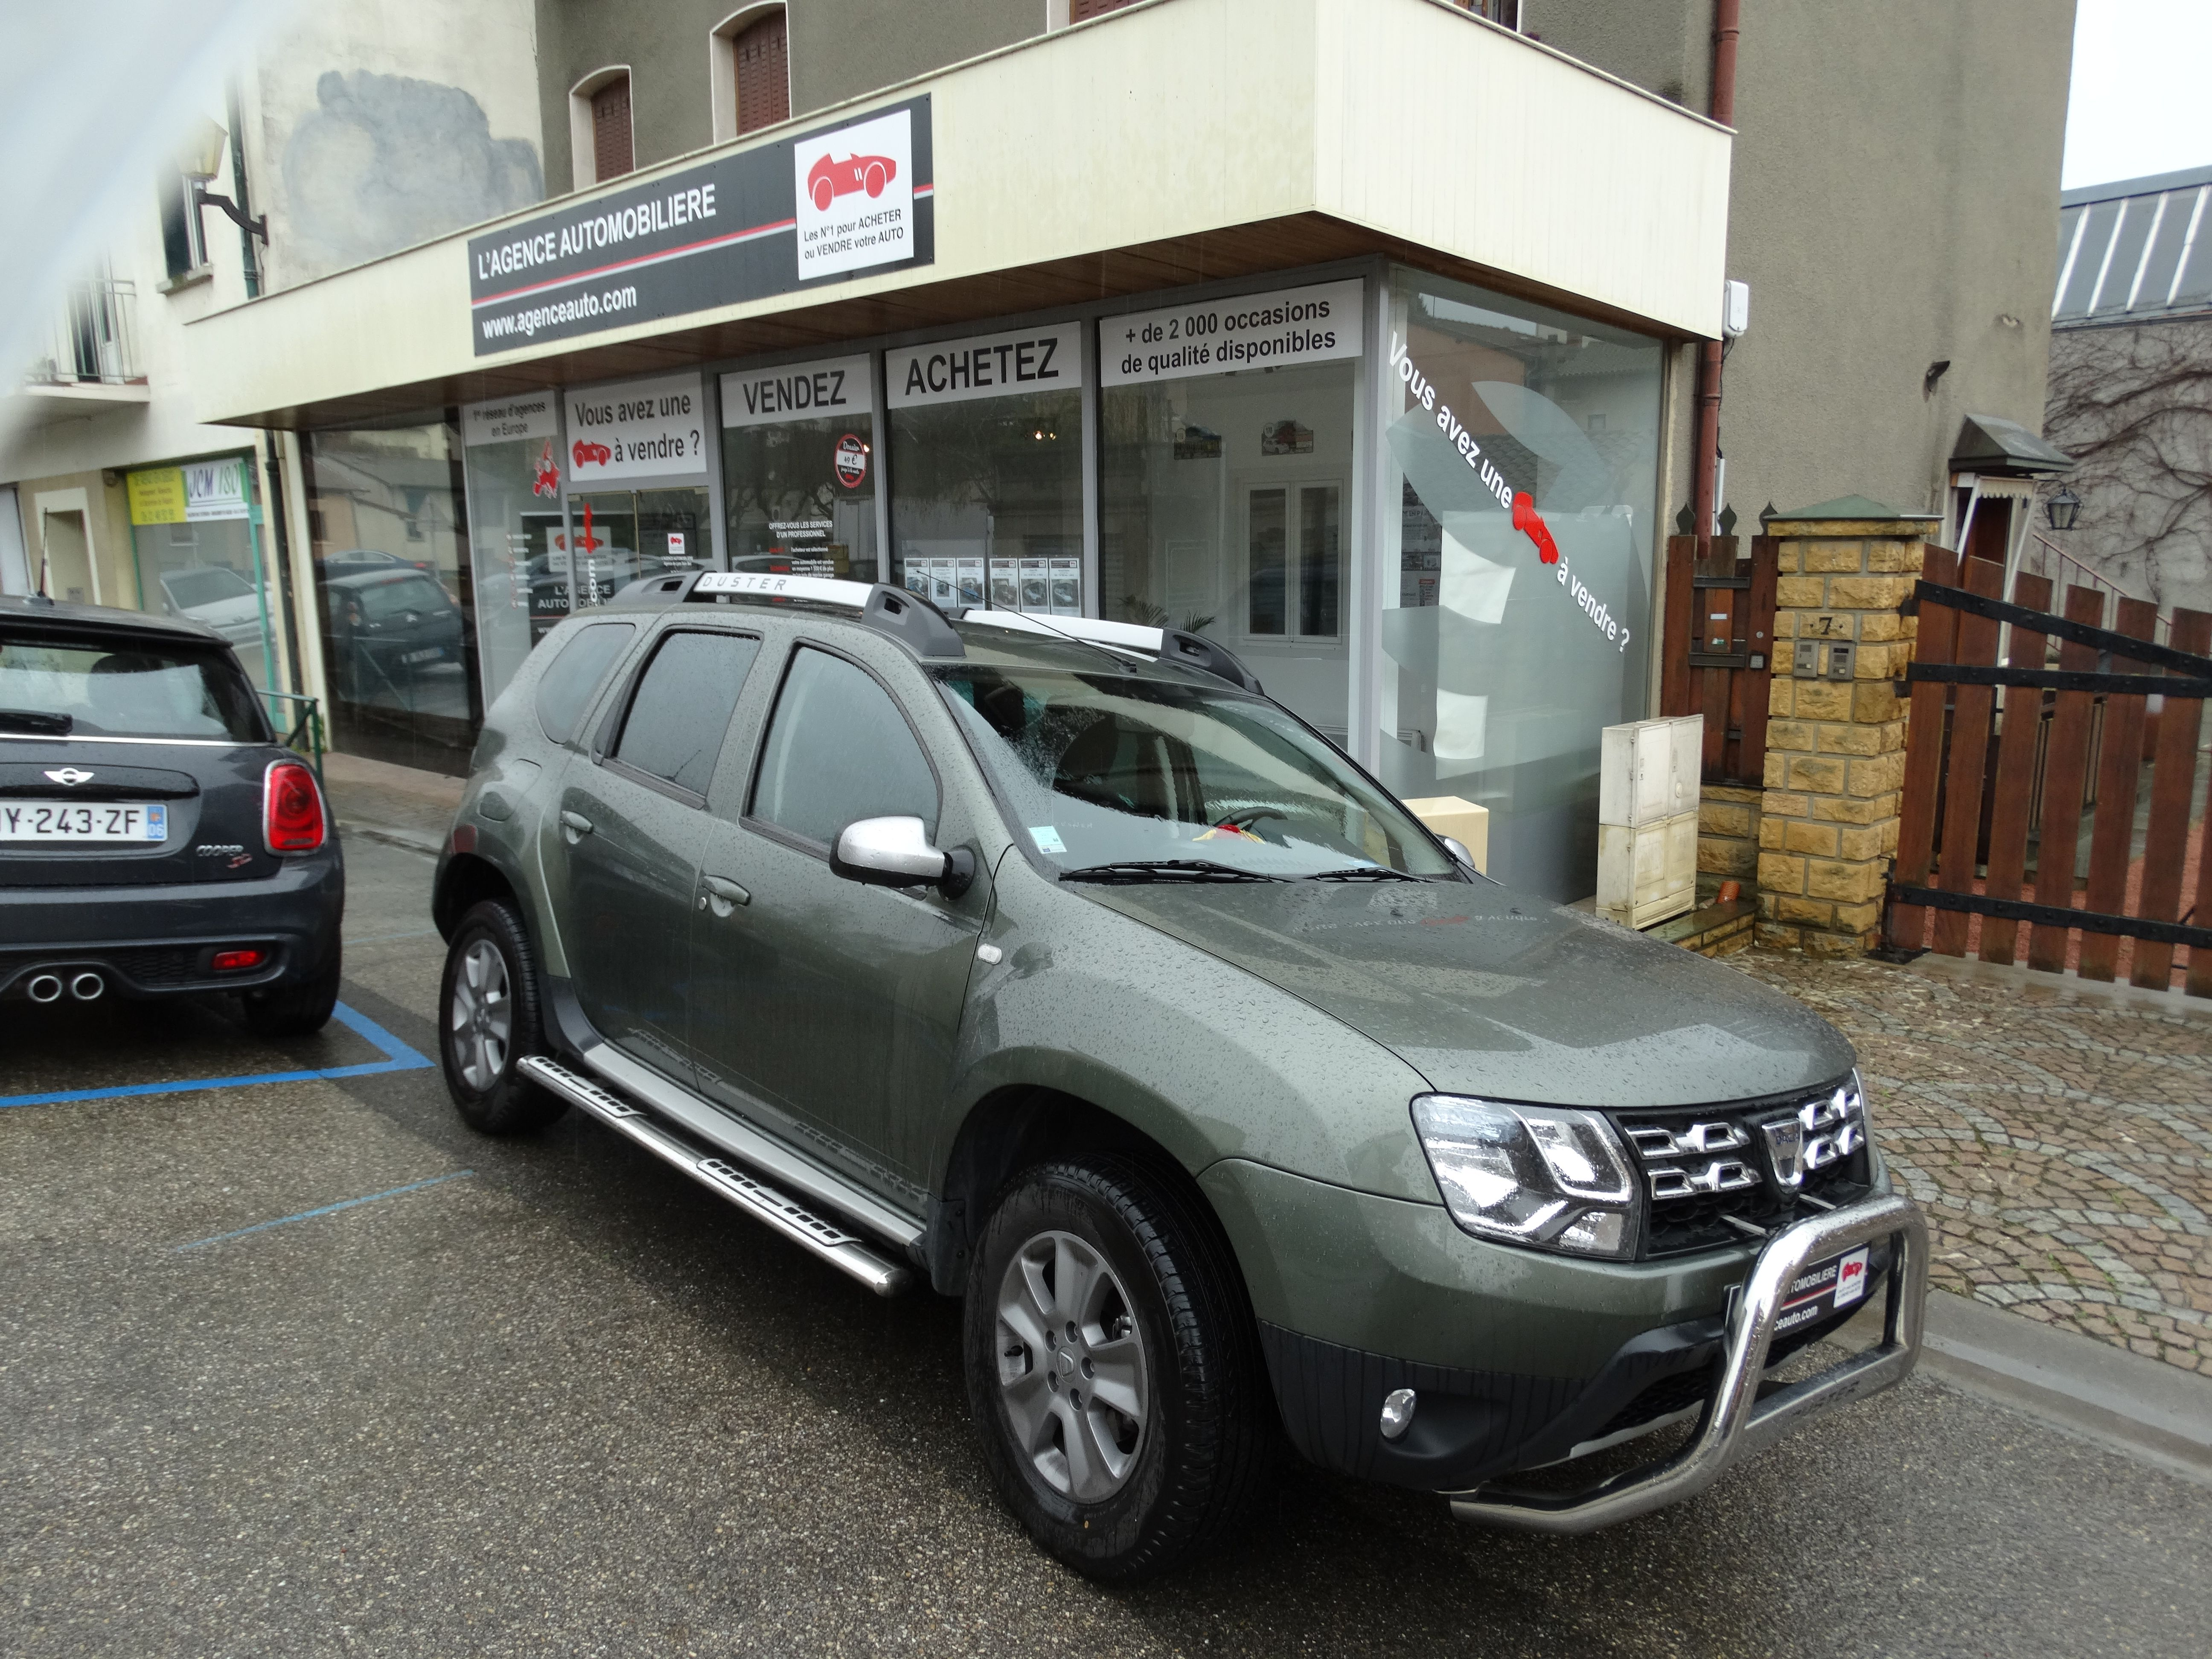 dacia duster 1 5 dci 110 prestige 4x4 occasion lyon sain. Black Bedroom Furniture Sets. Home Design Ideas